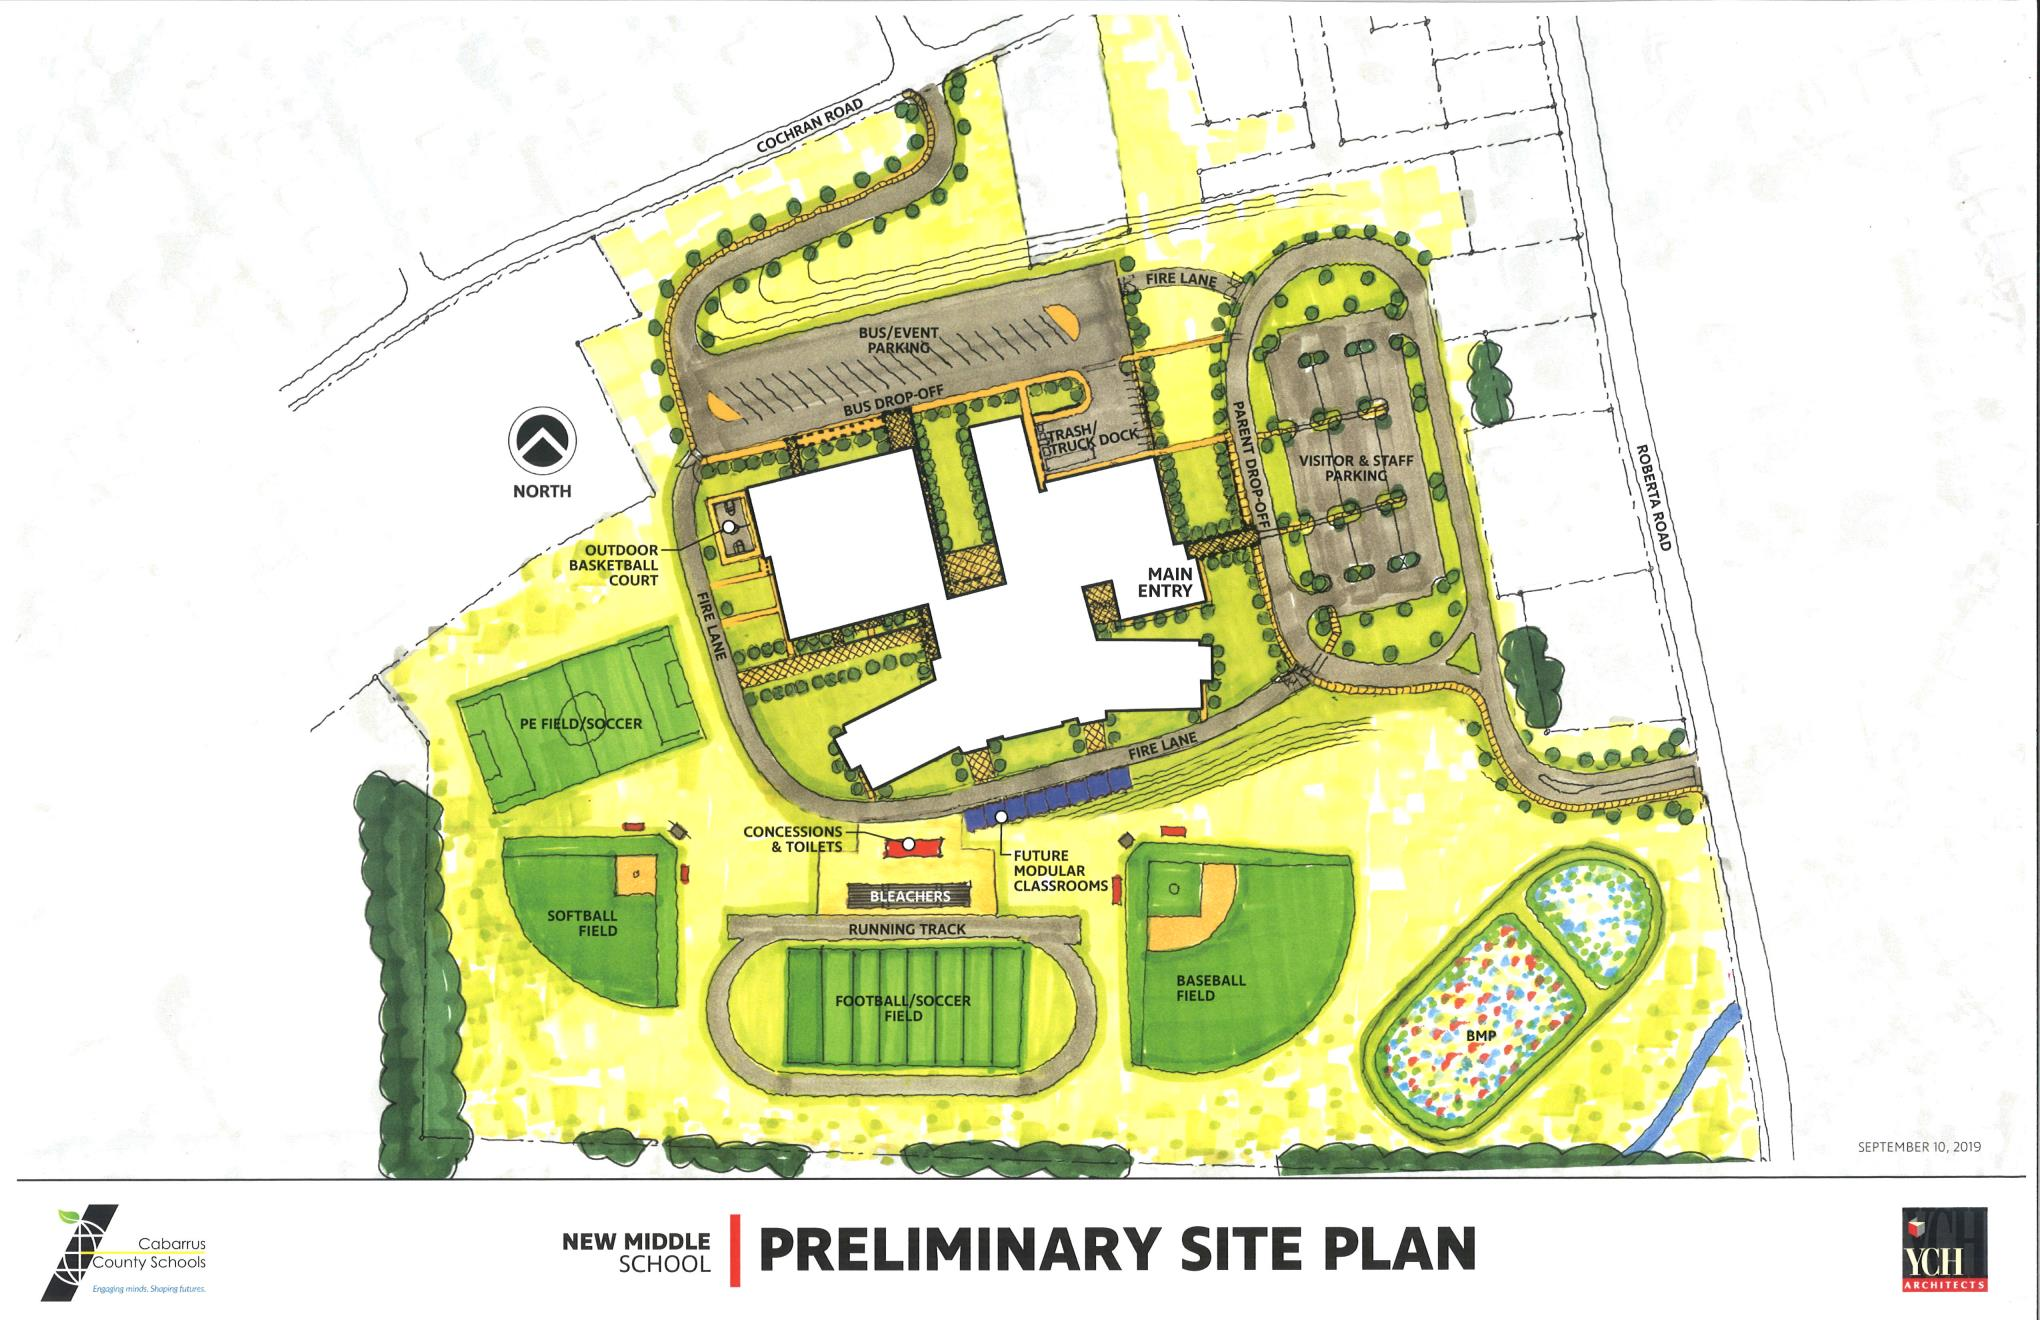 Preliminary Site Plan